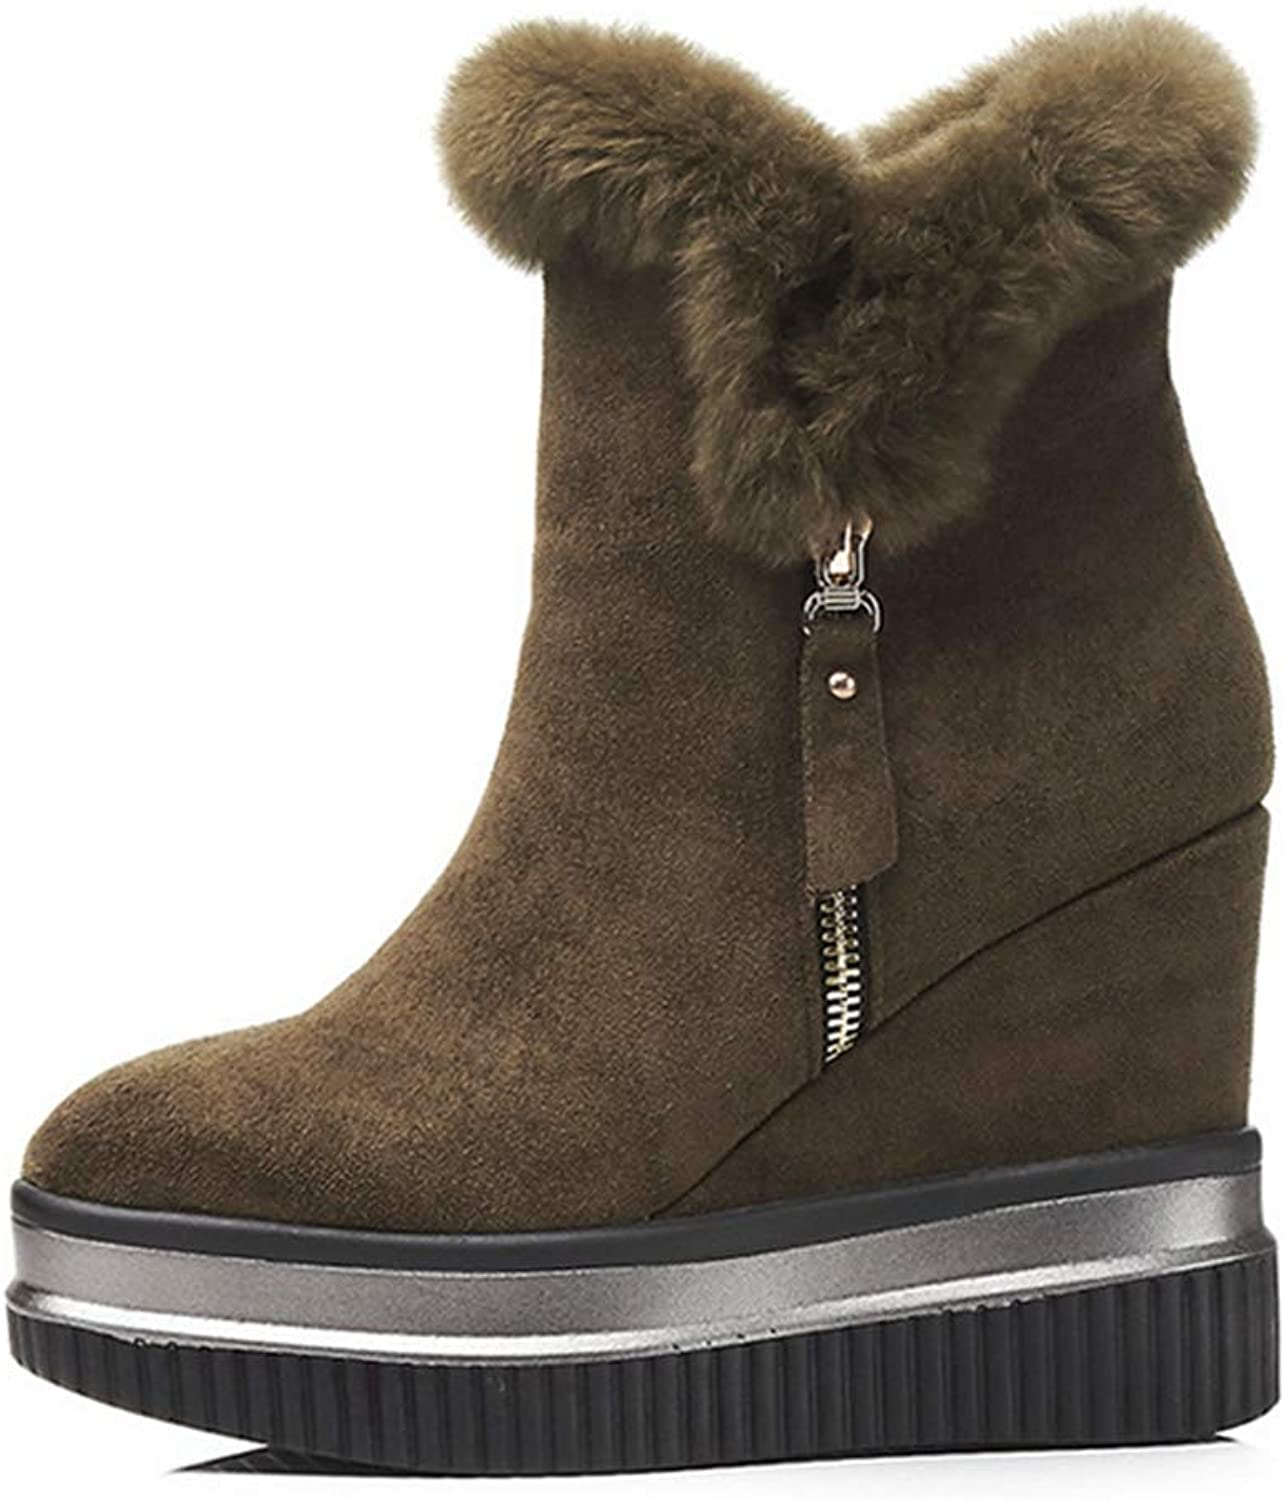 GIY Womens Ankle Snow Boots Skiing Fabric Warm Faux Suede Casual Slip On Winter Platform Wedge Boots